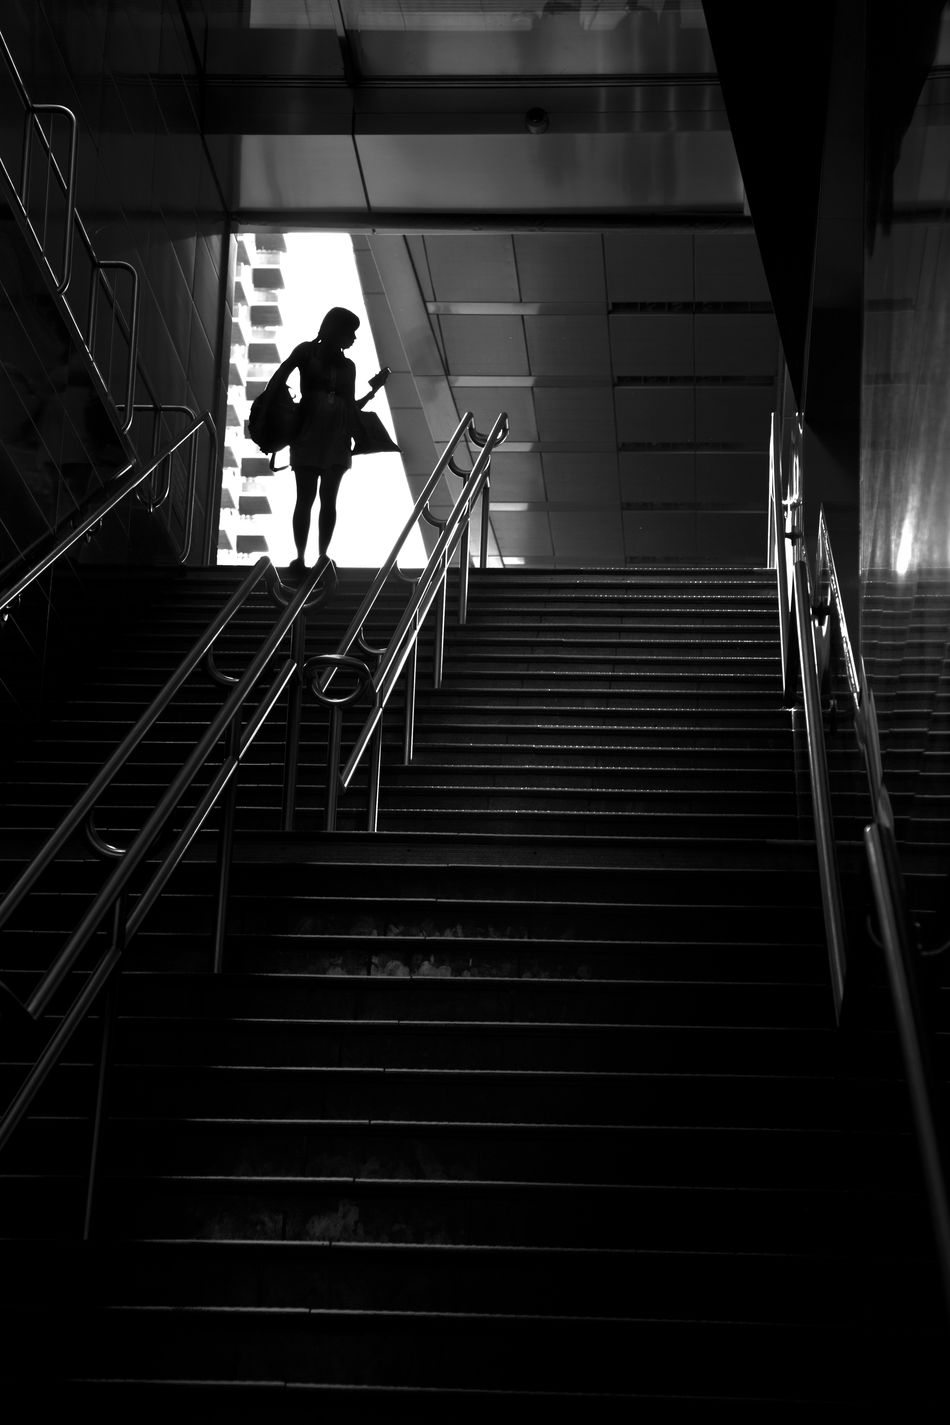 Black & White Checking Cell Phone Female Figure Silhouette Of A Woman Steps And Staircases